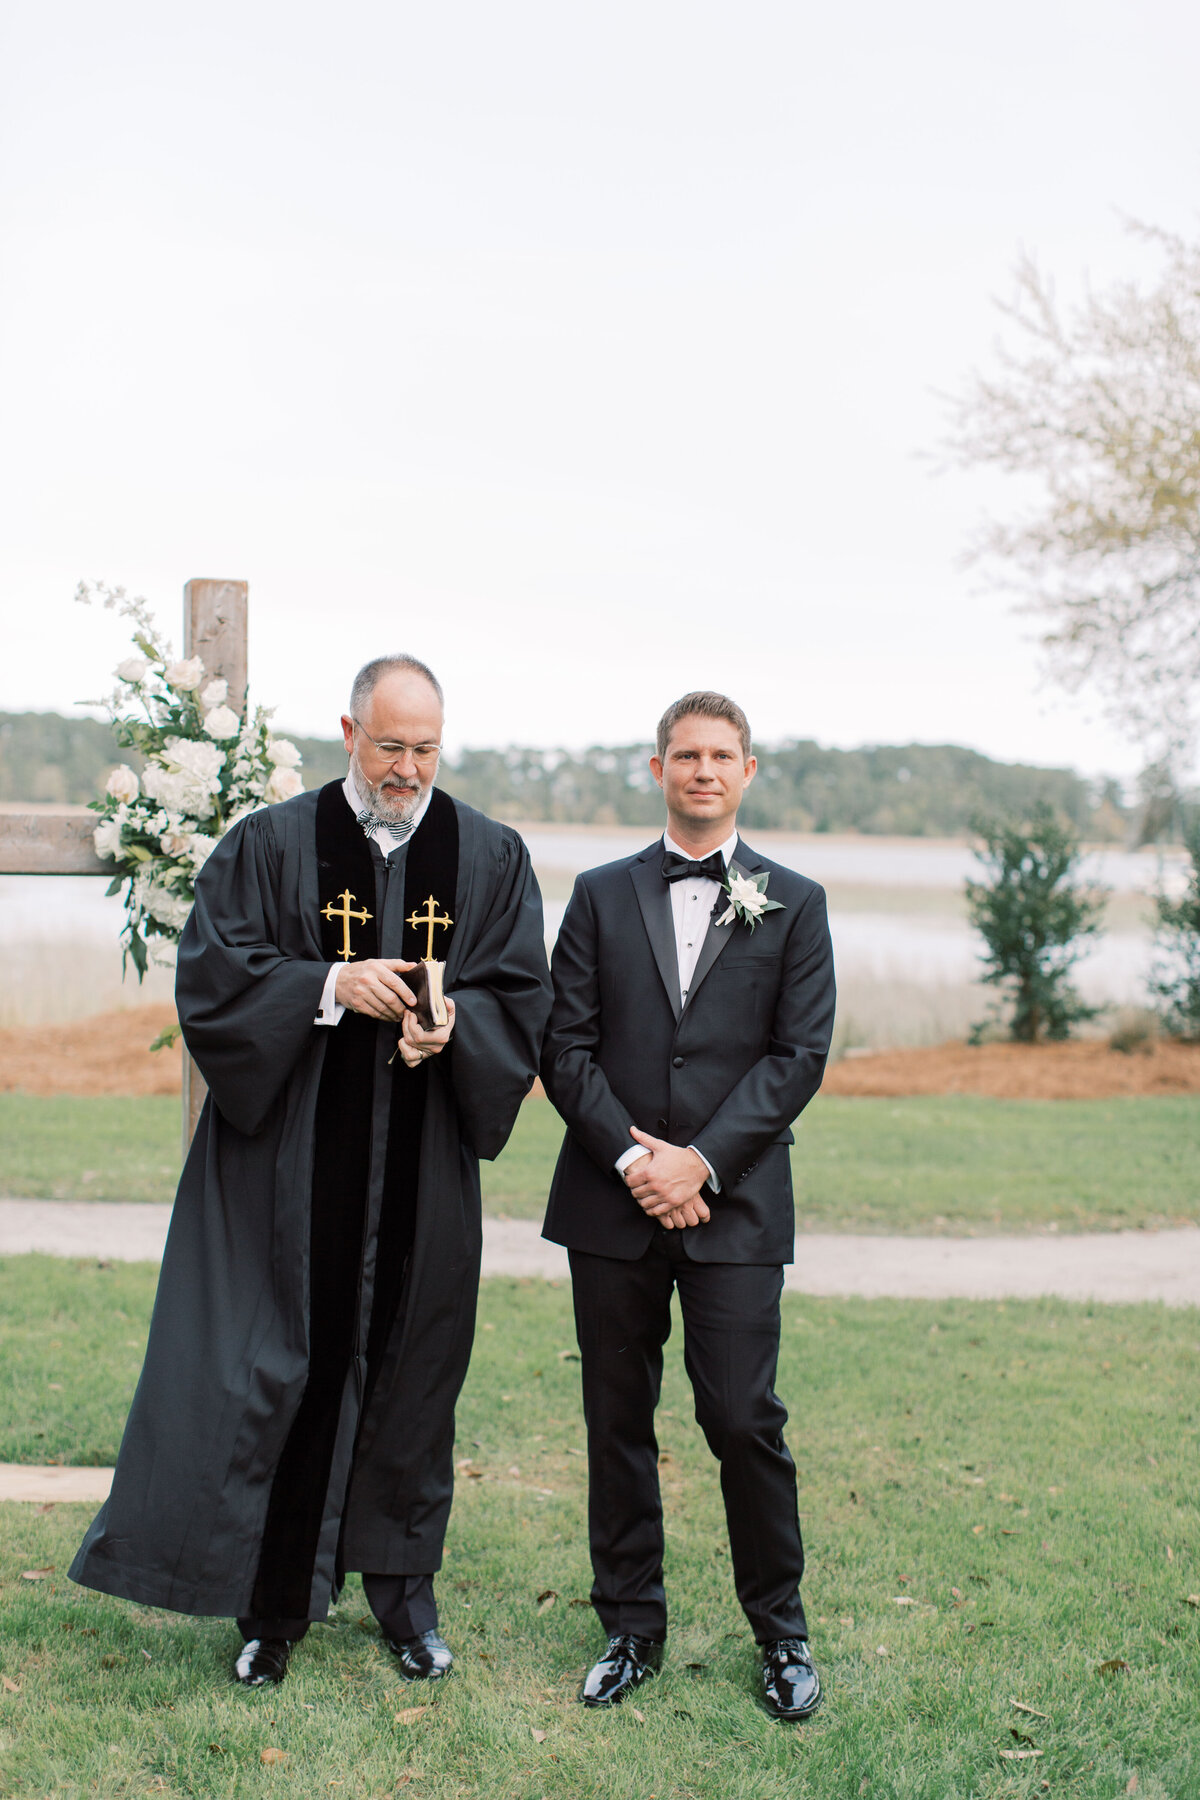 Powell_Oldfield_River_Club_Bluffton_South_Carolina_Beaufort_Savannah_Wedding_Jacksonville_Florida_Devon_Donnahoo_Photography_0515